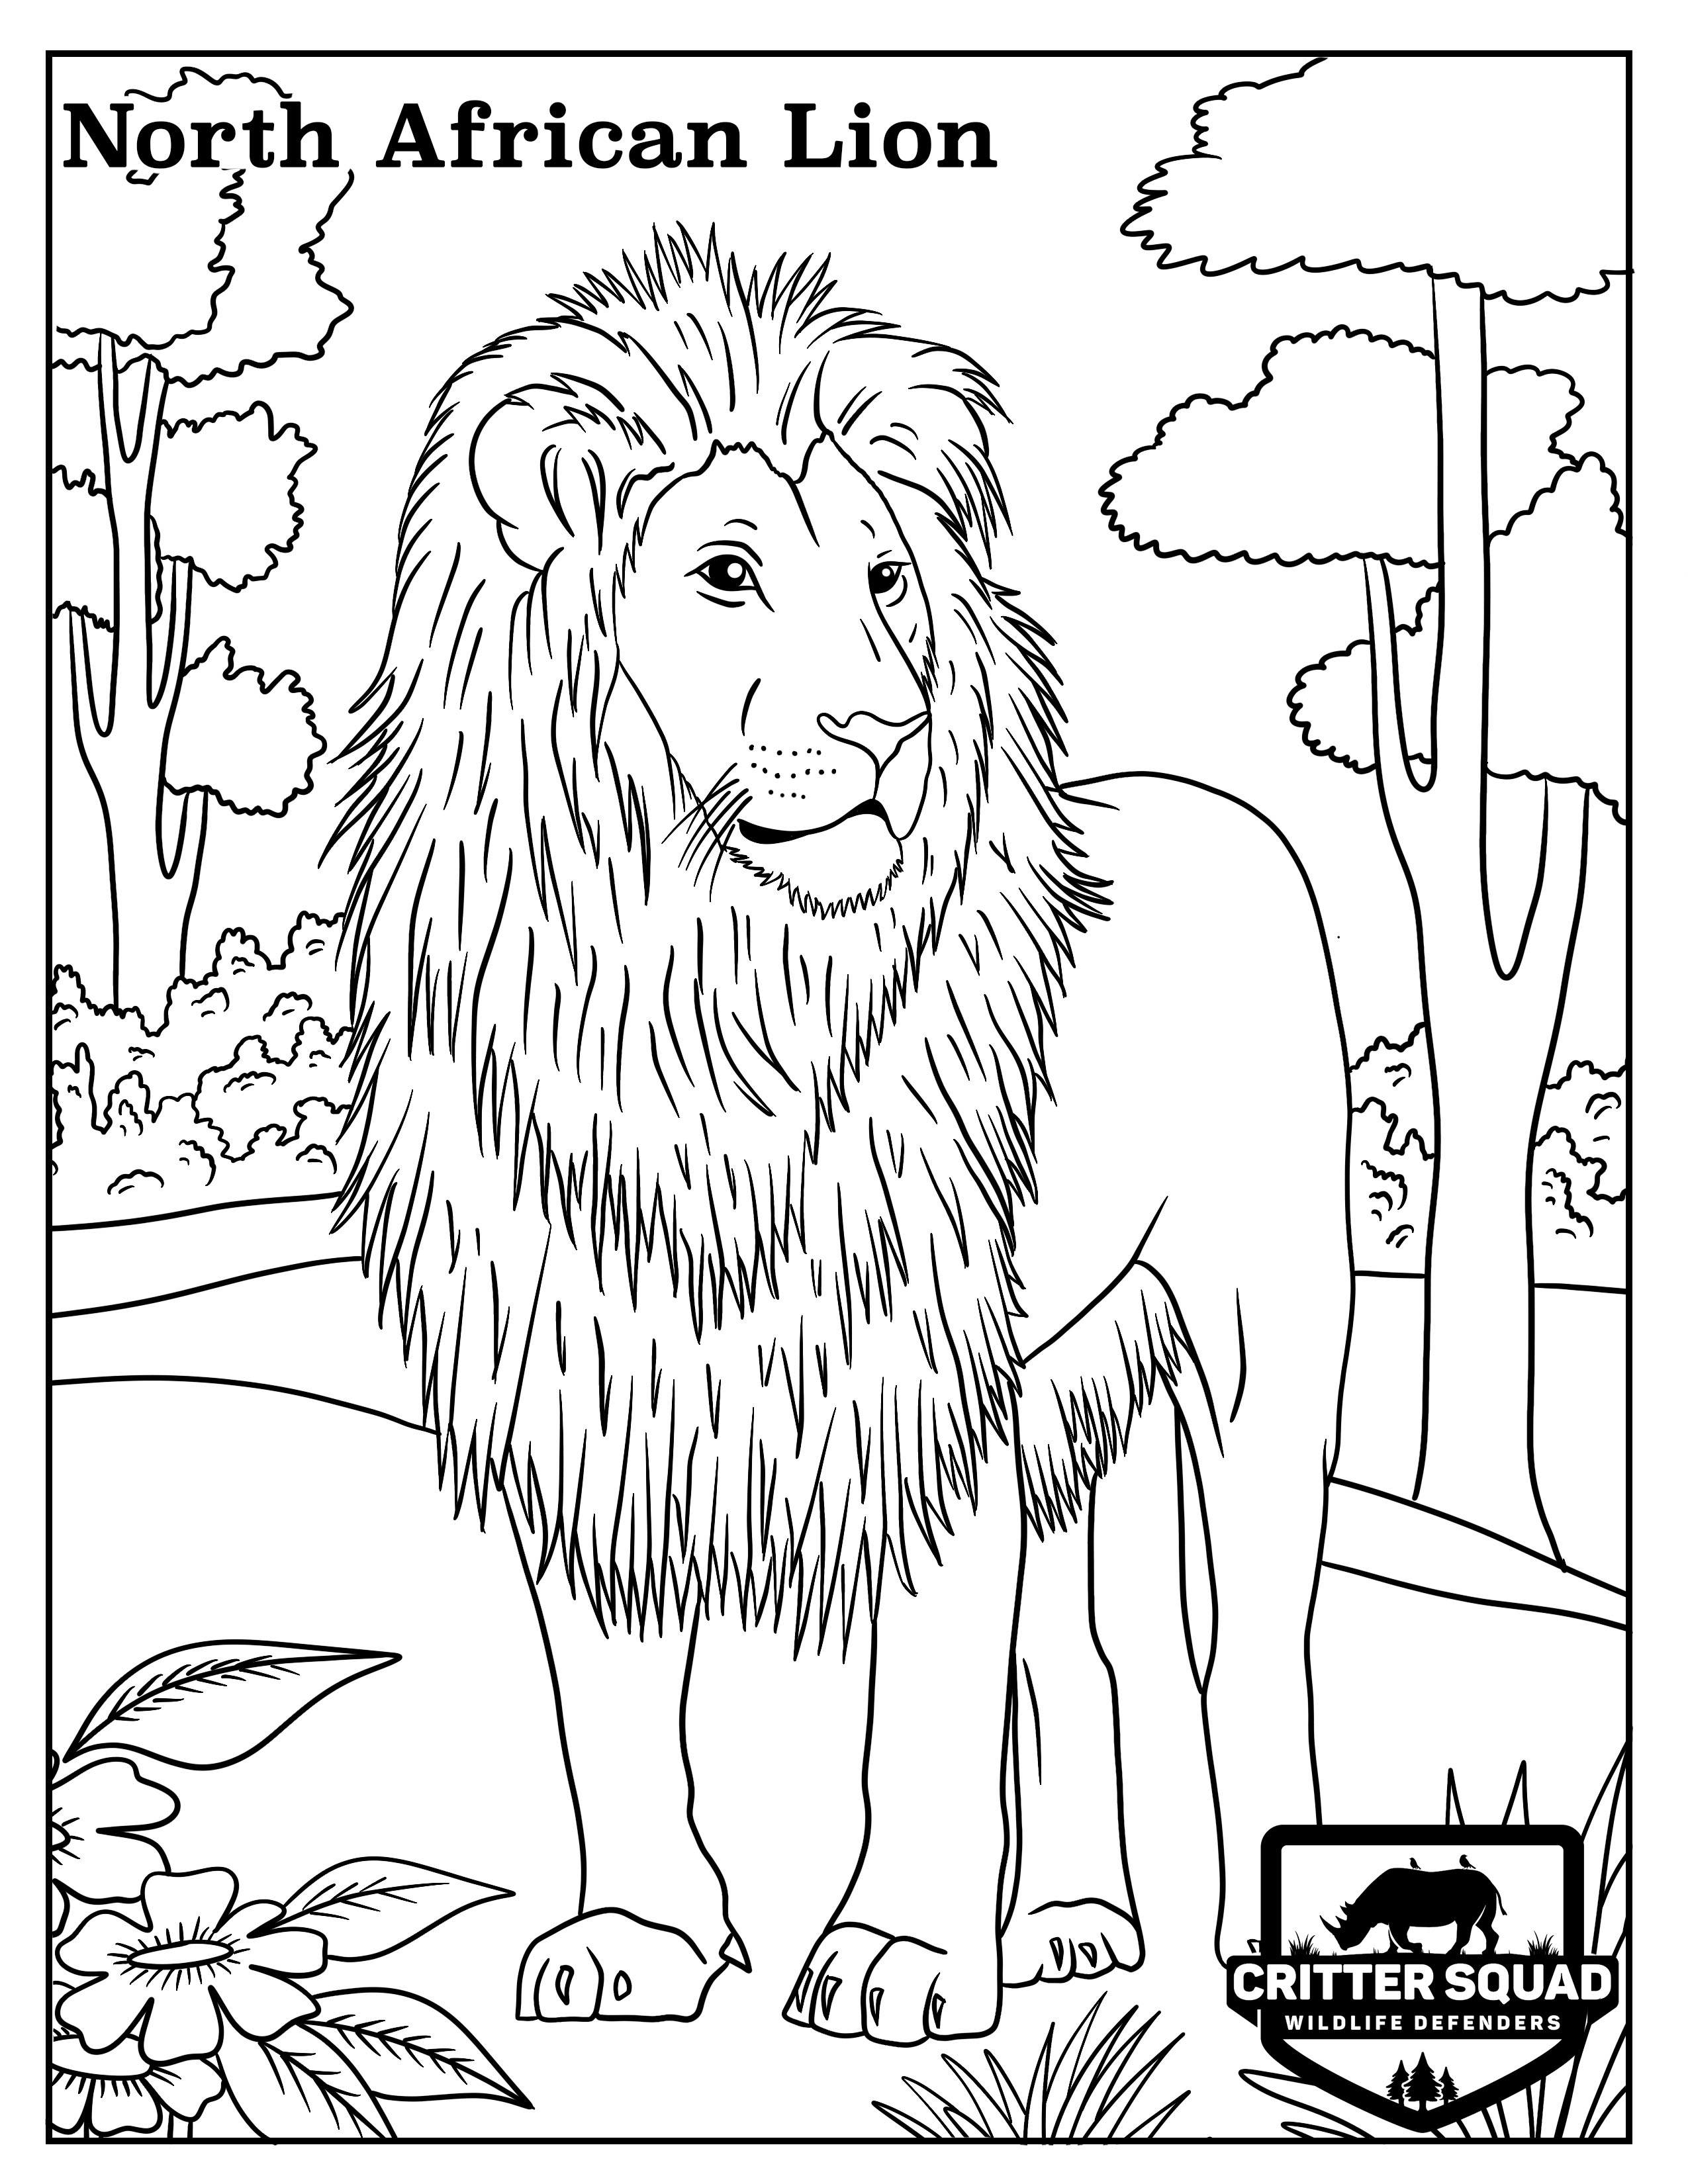 lion coloring image lion free to color for children lion kids coloring pages image coloring lion